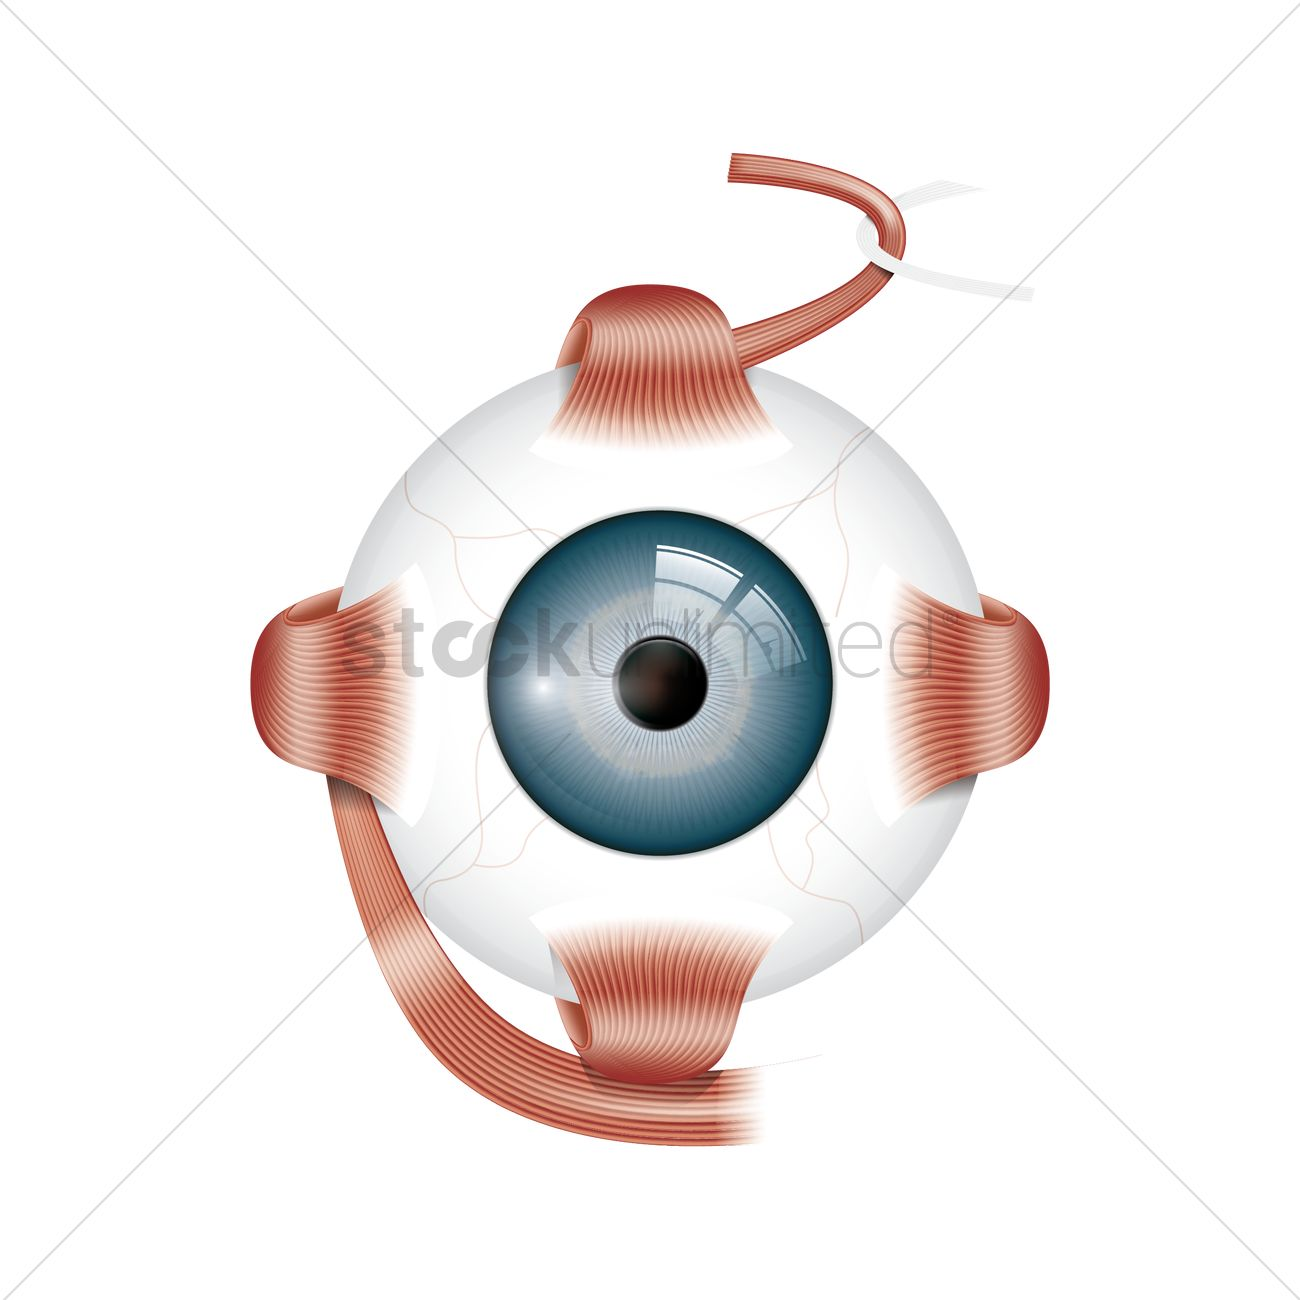 Human Eye Anatomy Vector Image 1815155 Stockunlimited